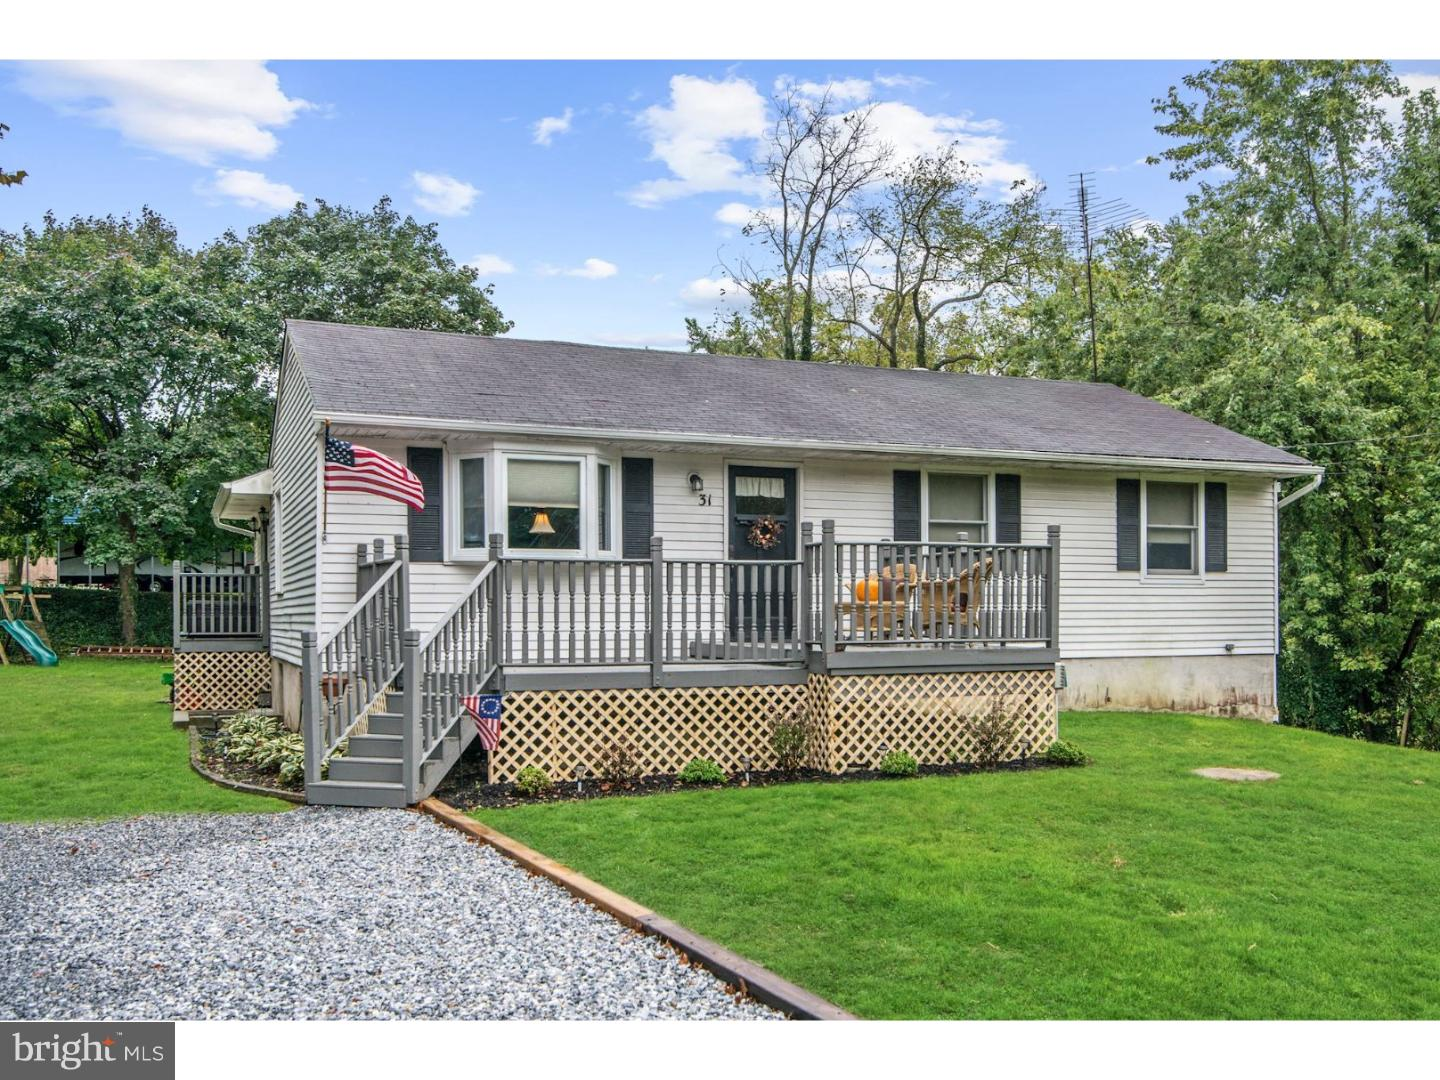 Single Family Home for Sale at 31 E CANAL Street Alloway, New Jersey 08079 United States